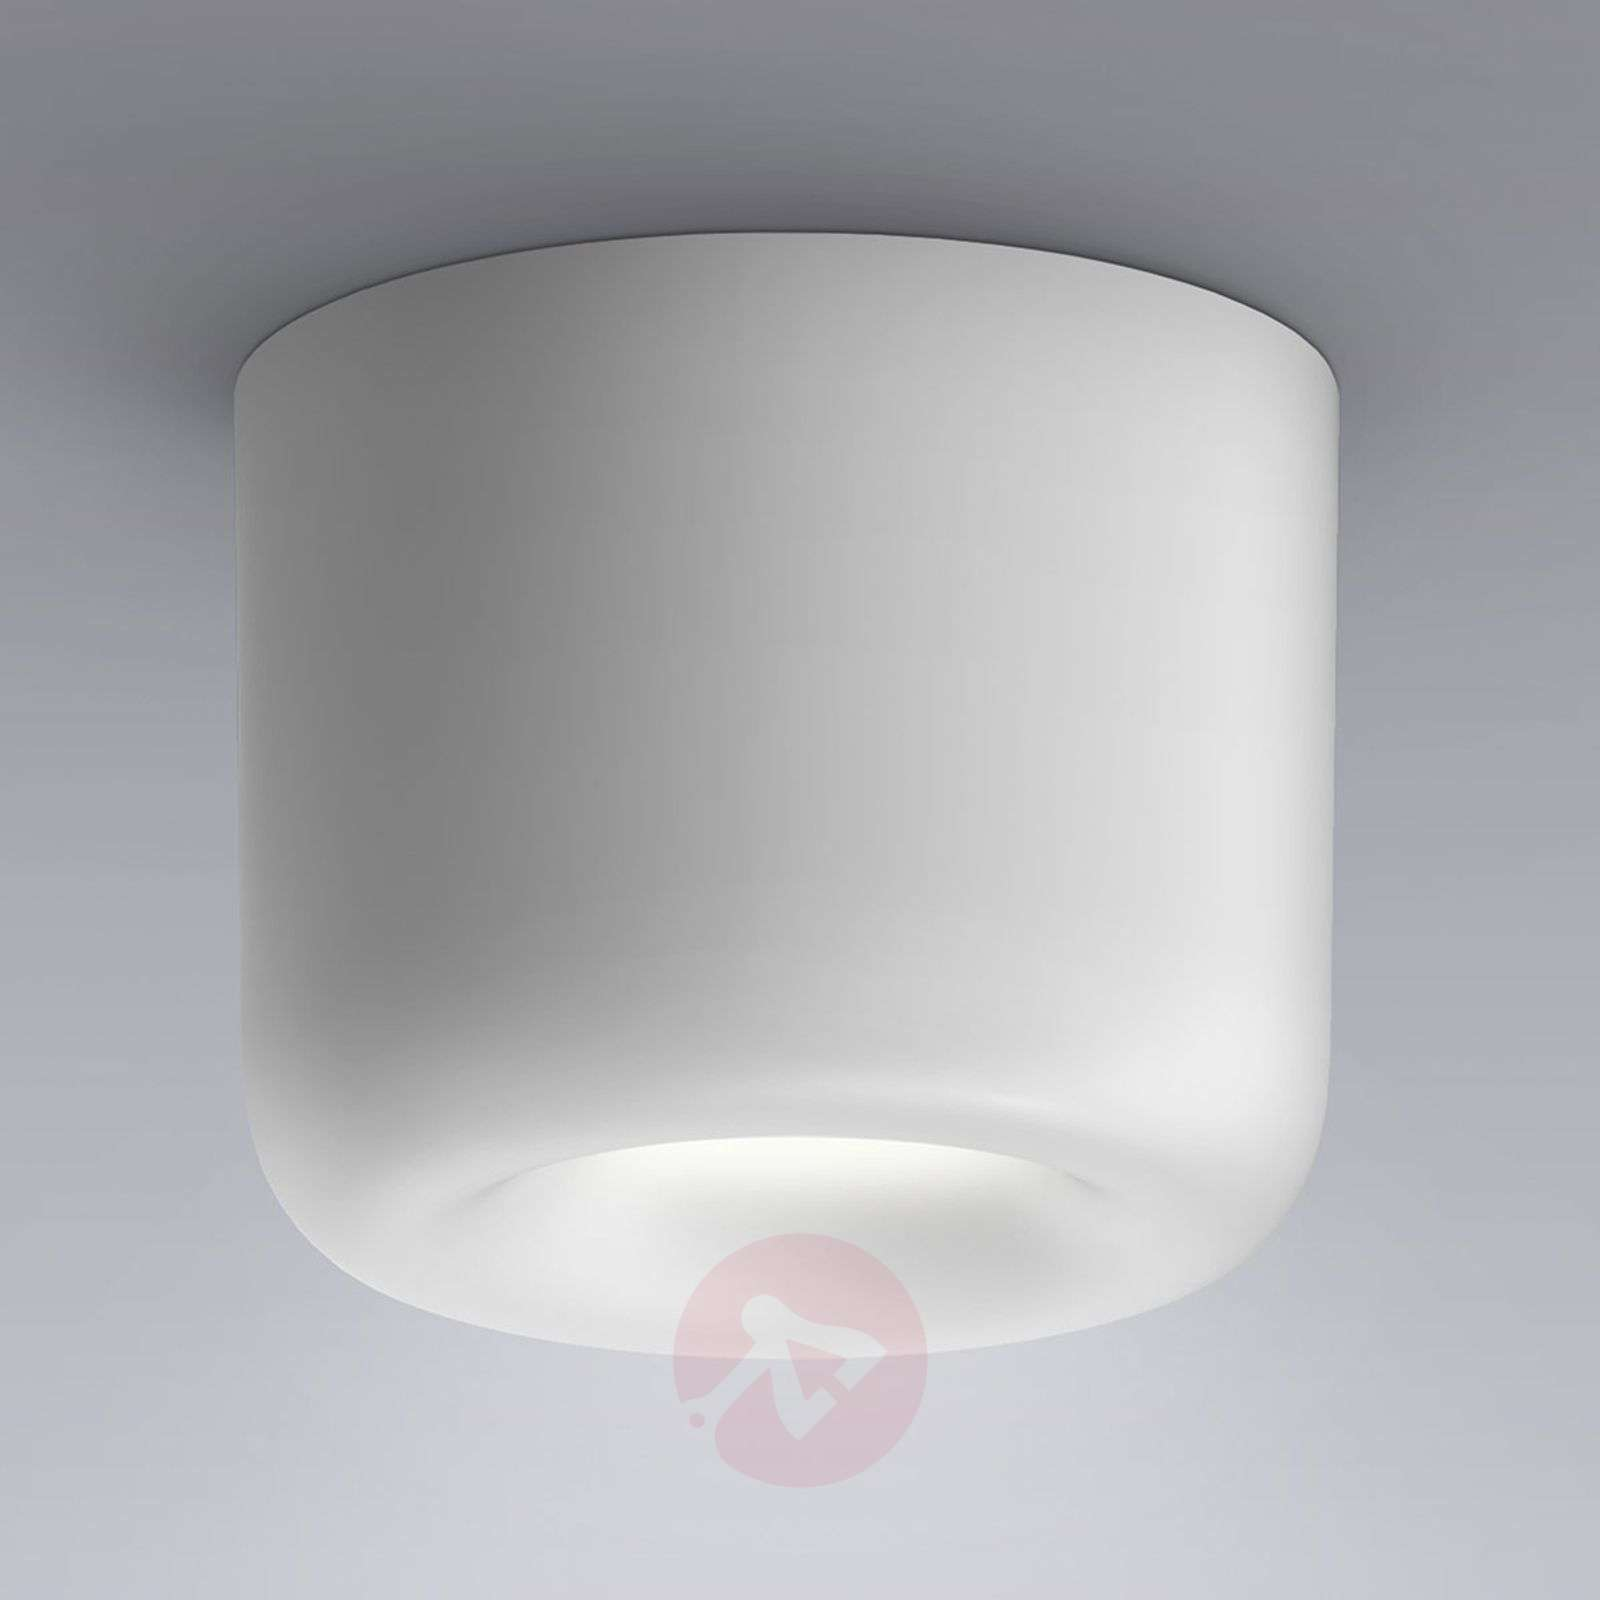 serien.lighting Cavity Ceiling plafonnier LED-8550077X-010